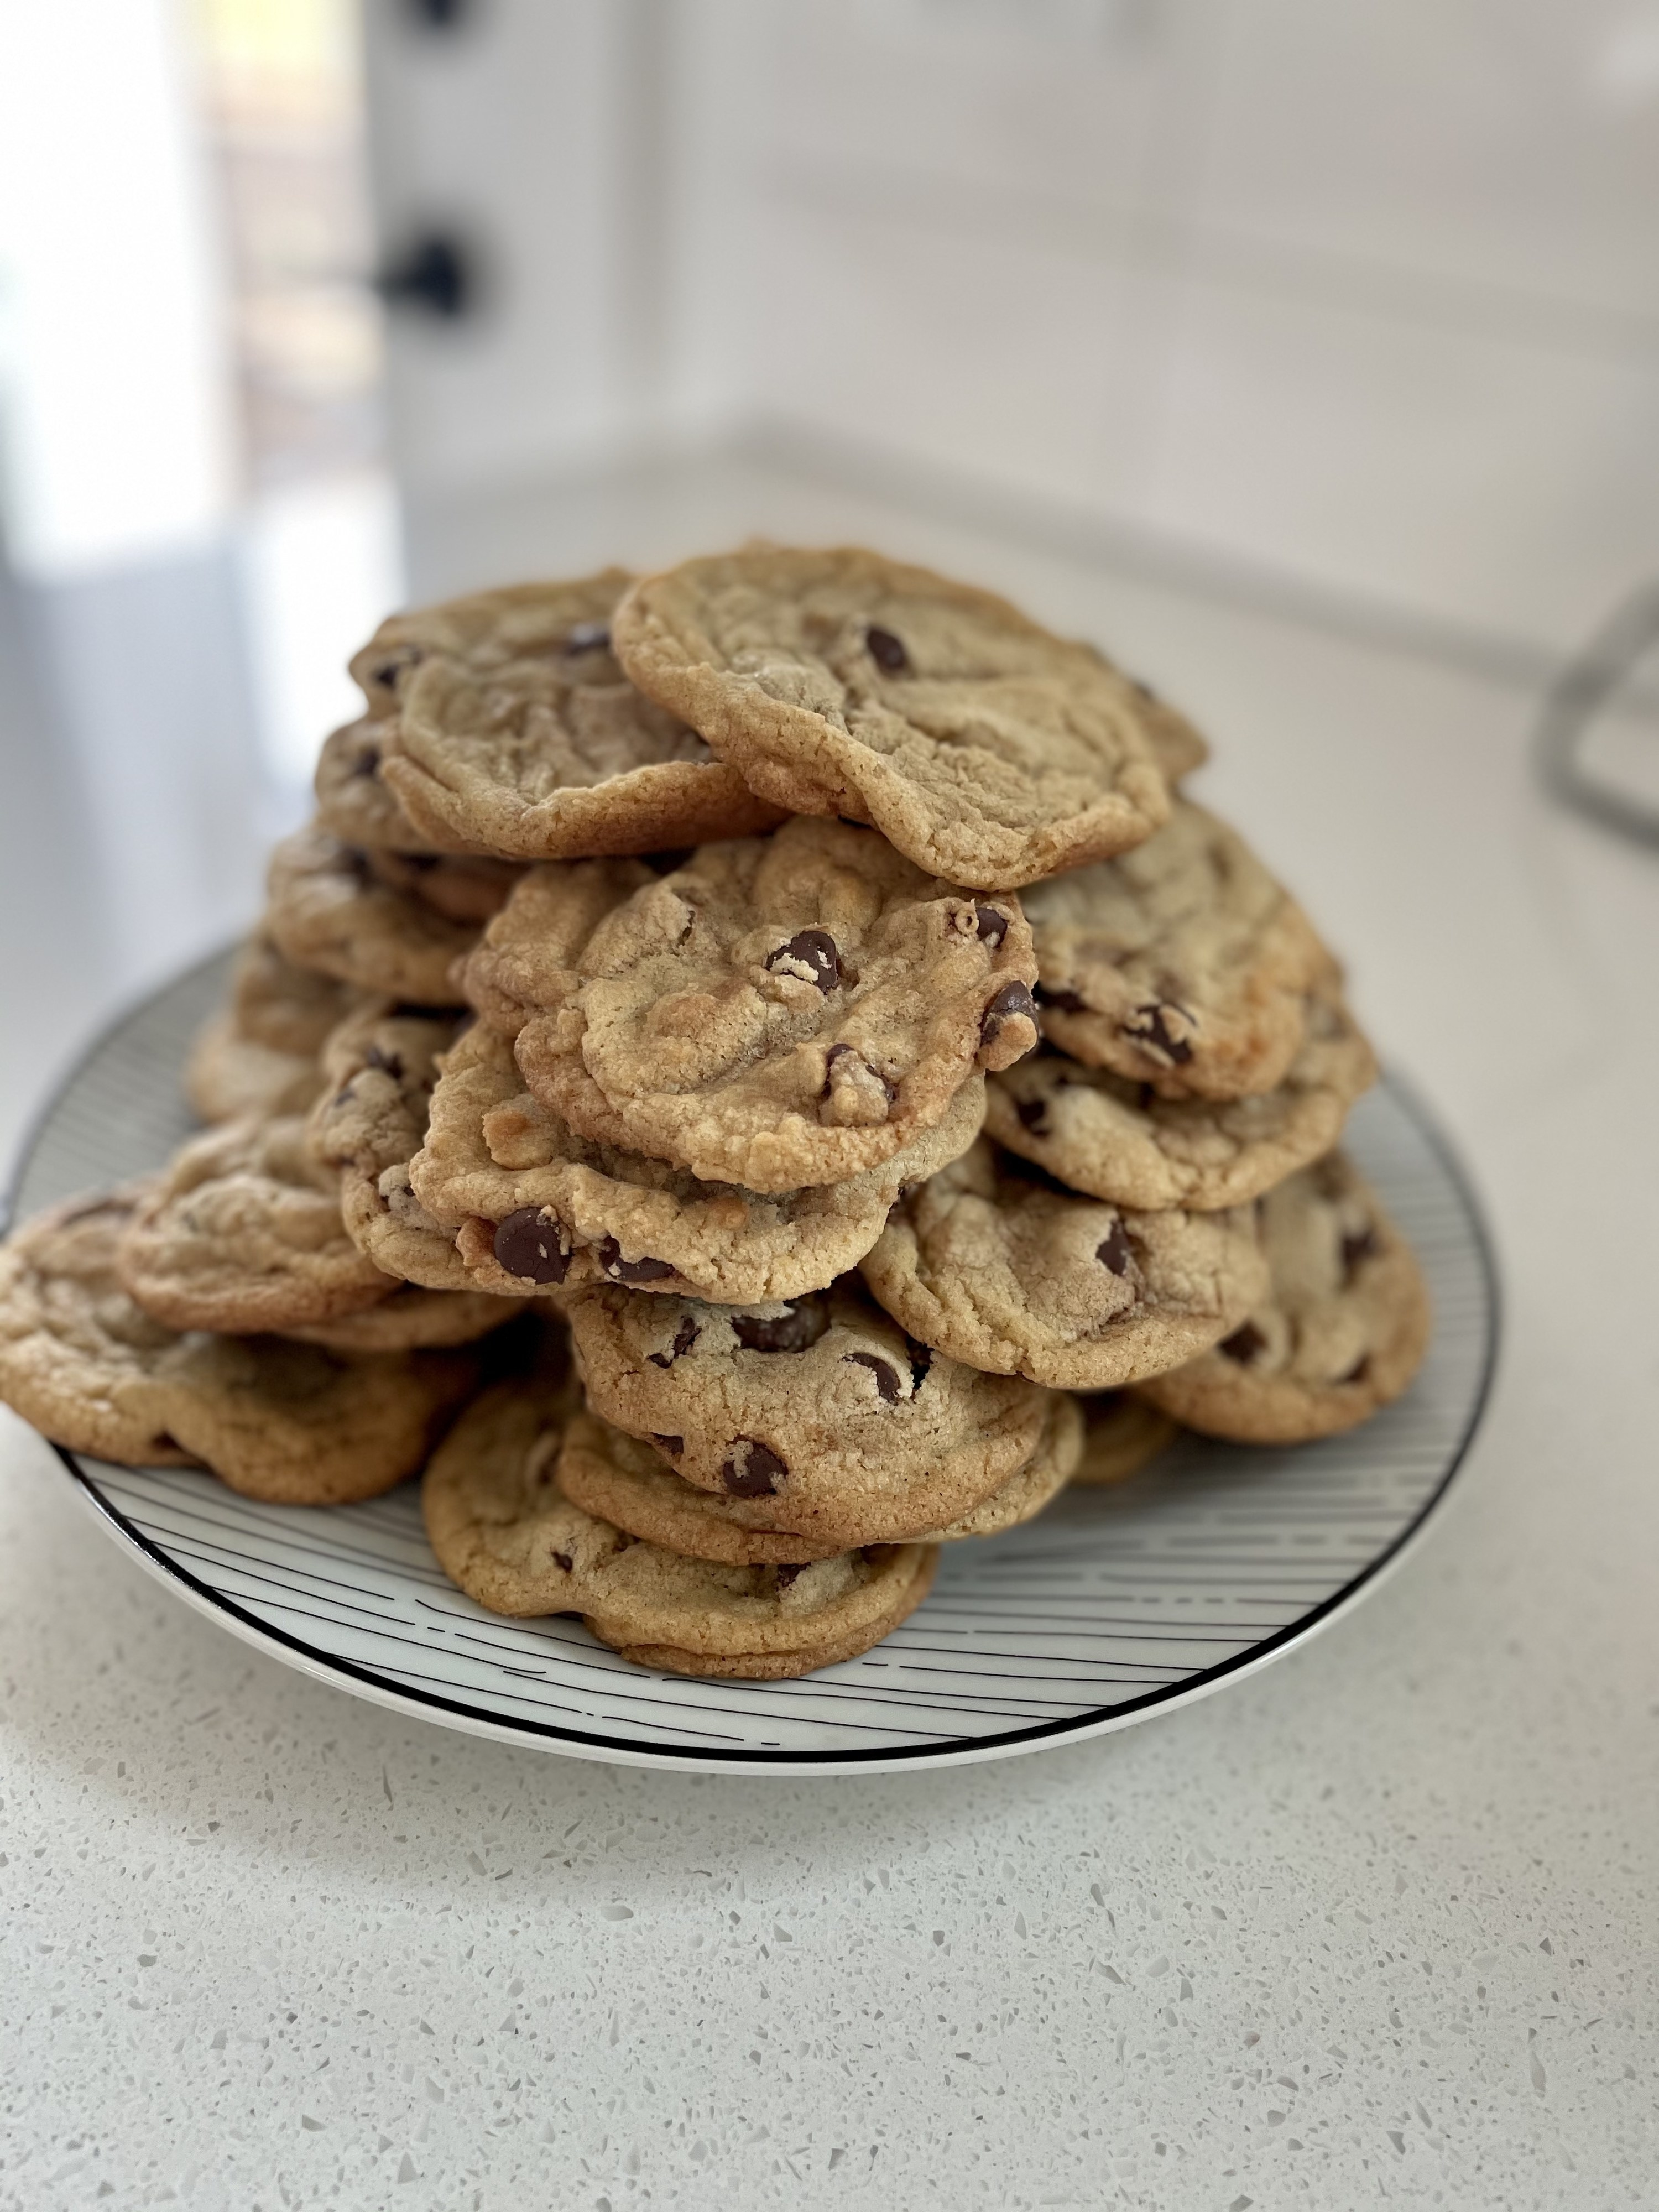 Chocolate chip cookies plated